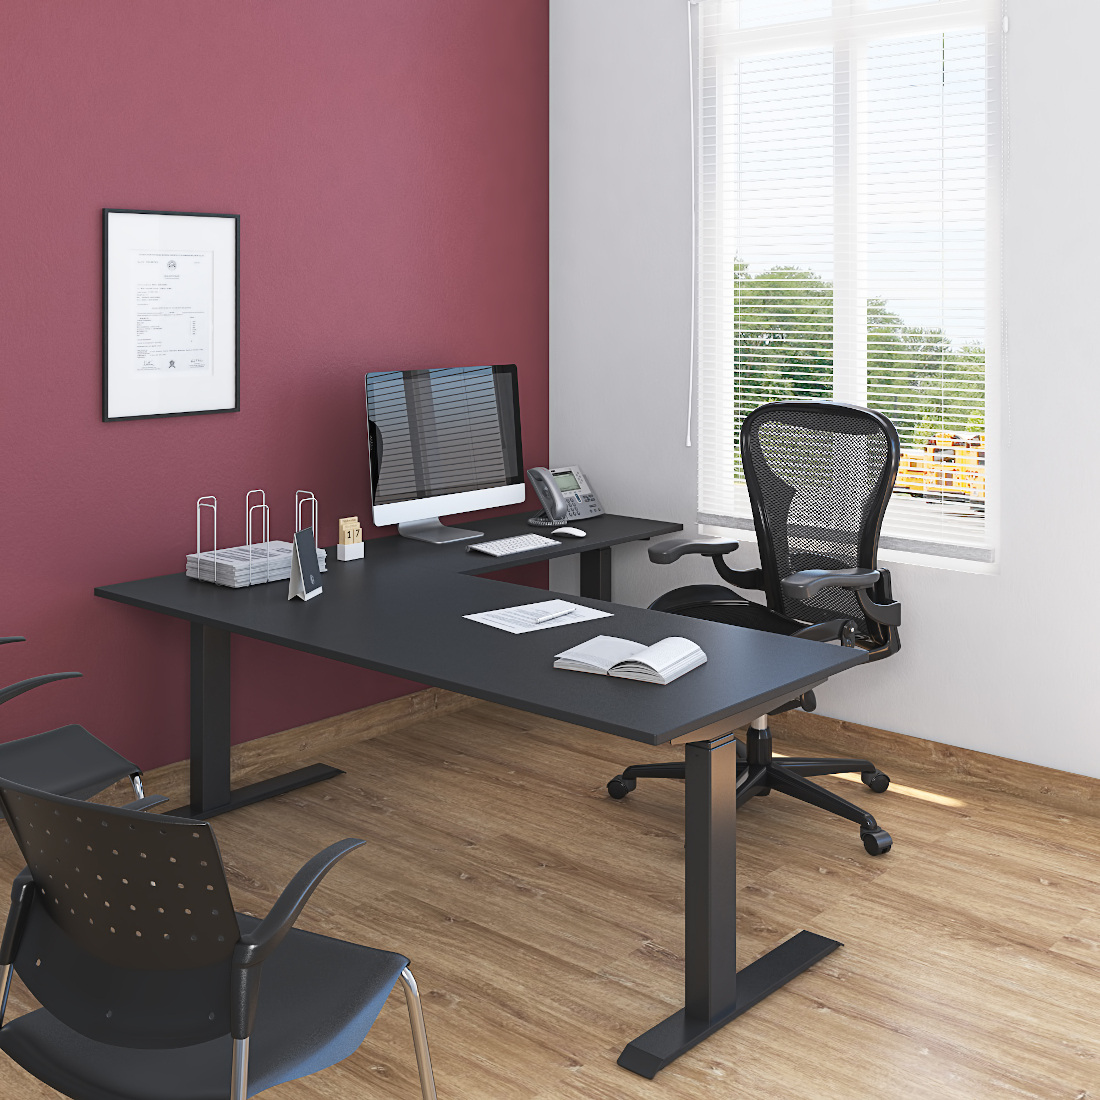 3d visualization office rendering office desks and chairs 3997 1